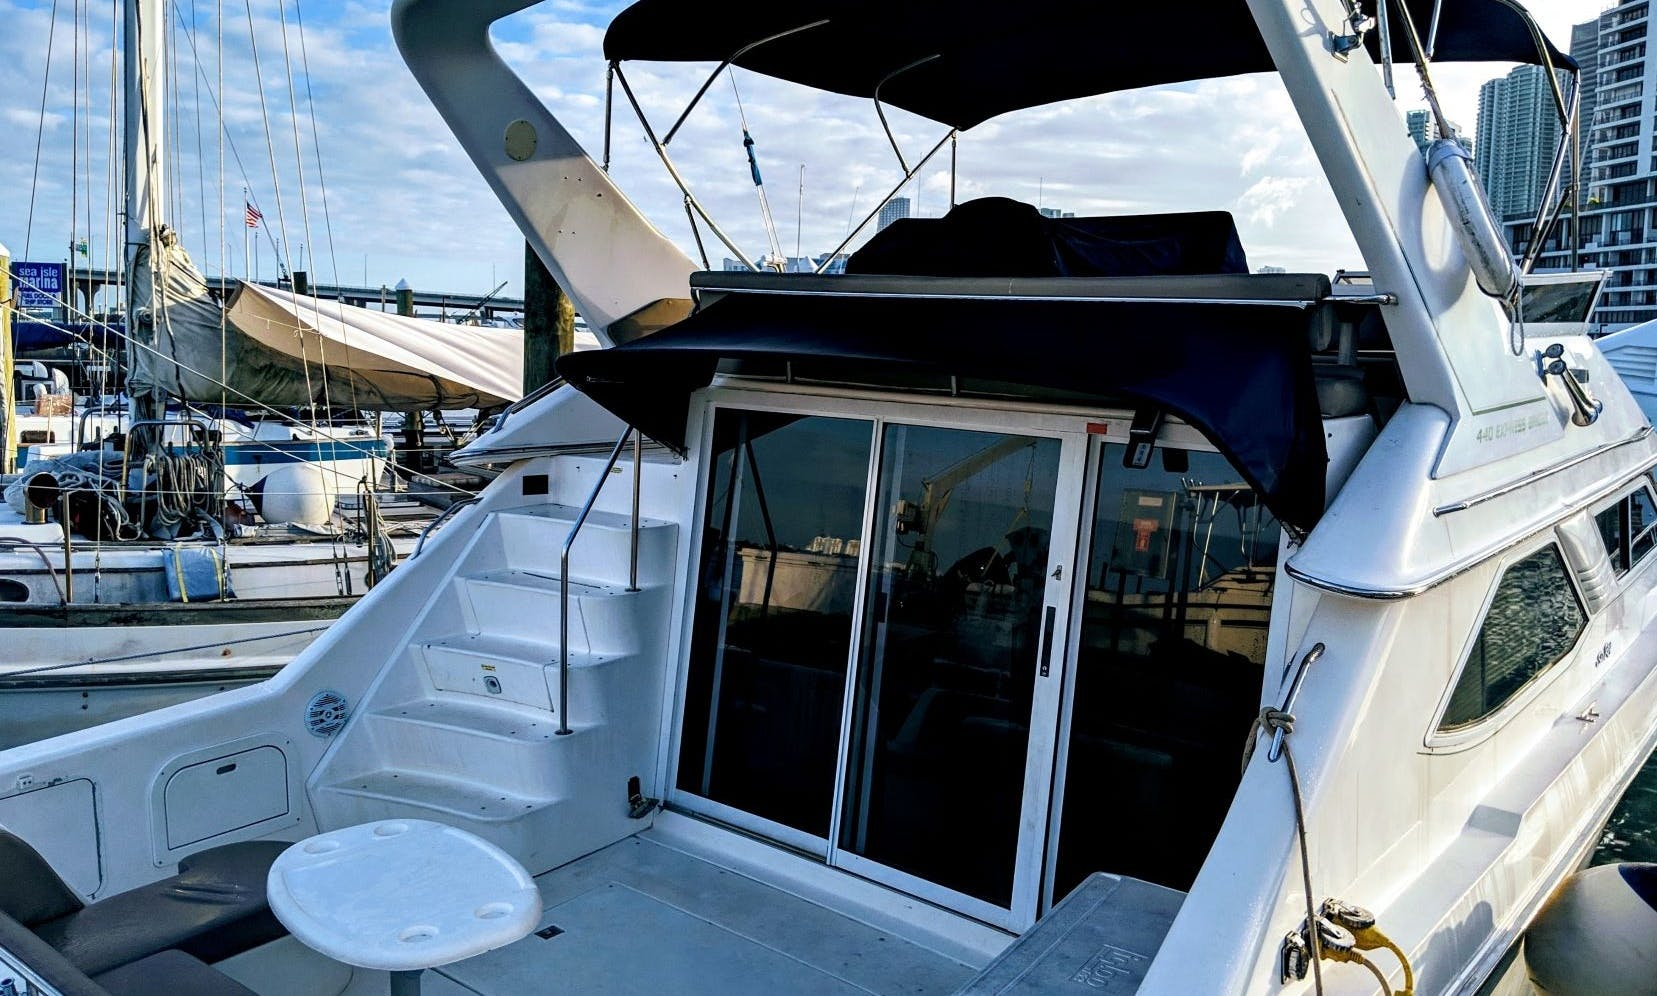 44 Foot Luxury Yacht for rent in beautiful Miami